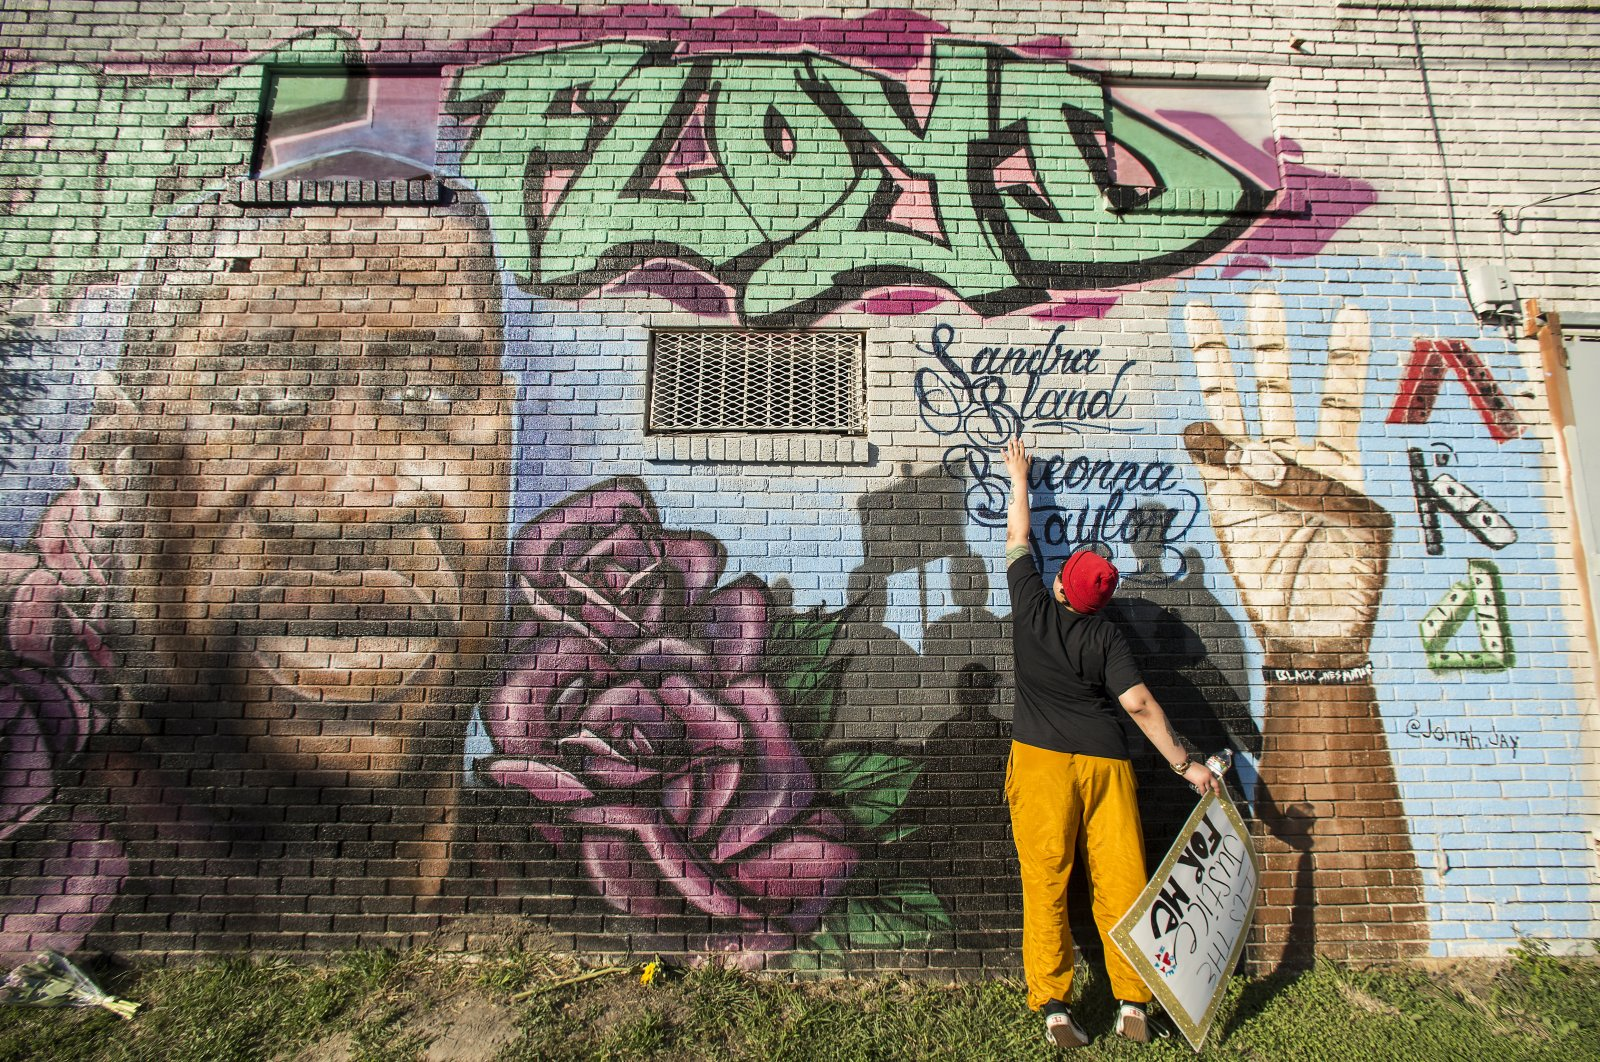 Daryel Simmons reaches up to touch the names of Sandra Bland and Breonna Taylor at a George Floyd memorial mural, Houston, U.S., April 20, 2021. (AP Photo)